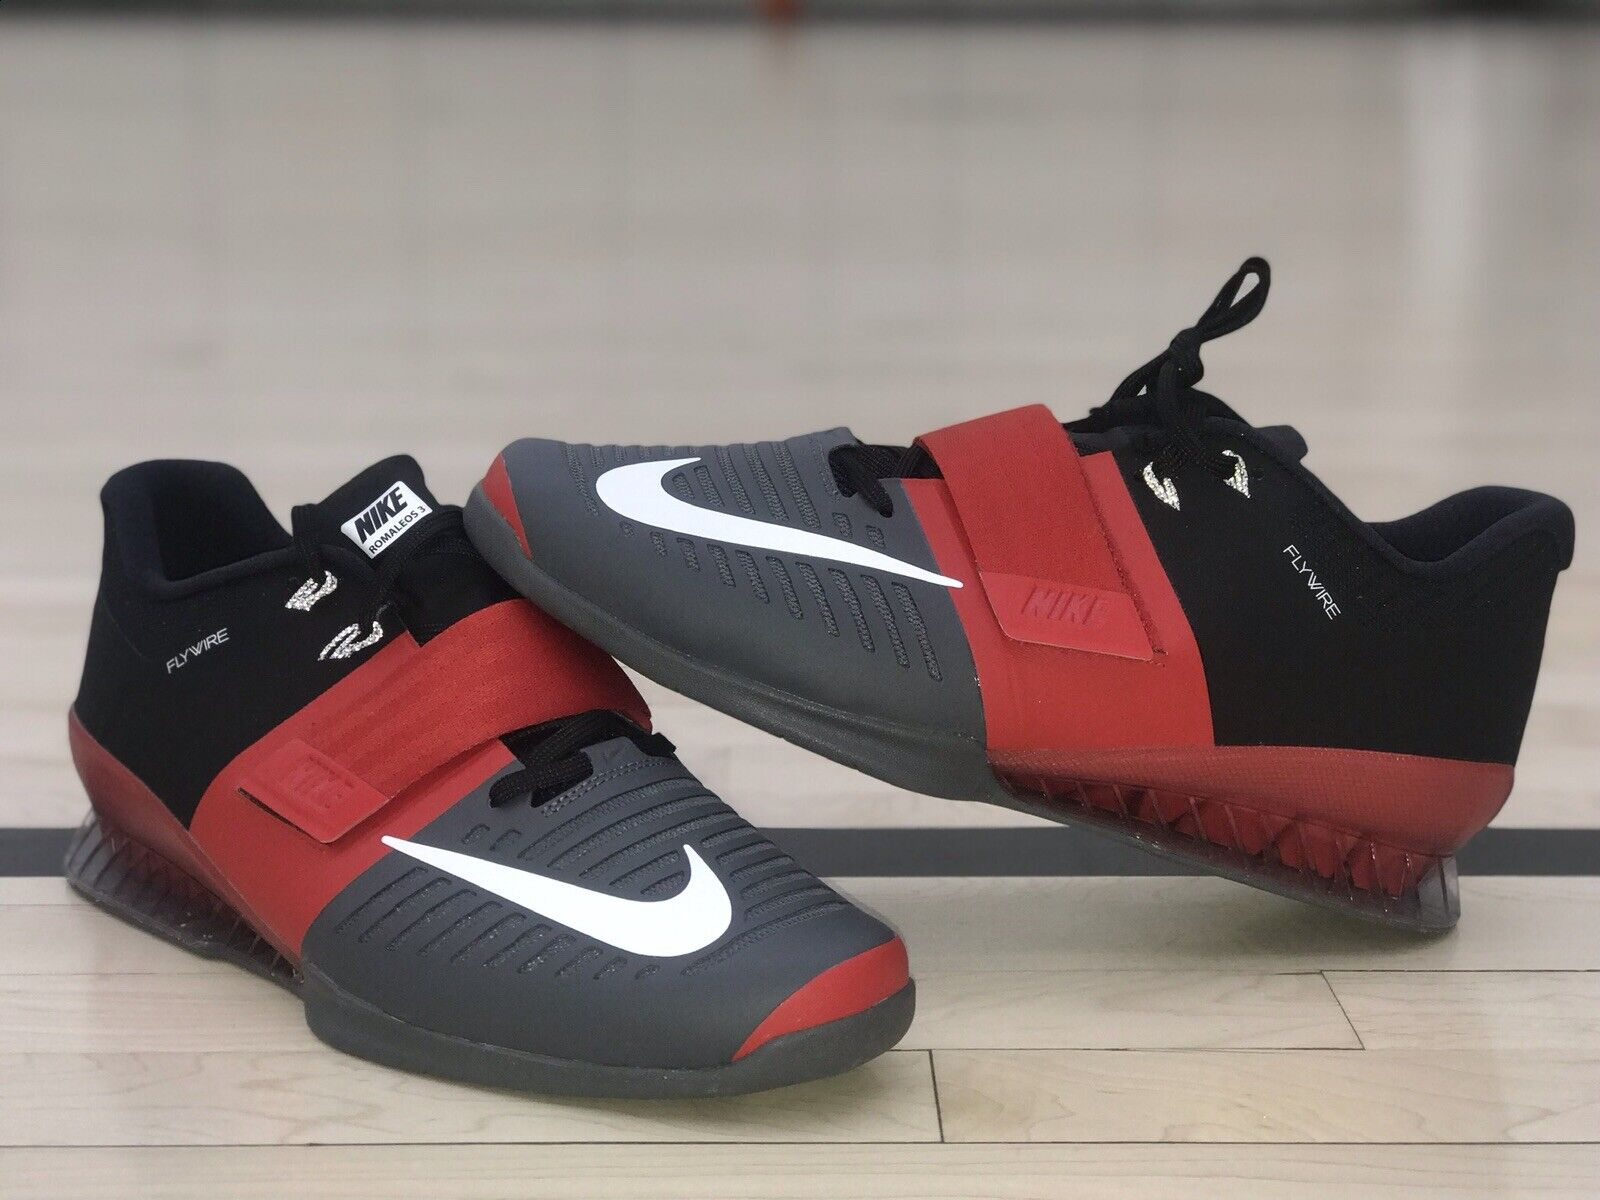 competitive price ffcdb a11d5 Nike Romaleos 3 Weightlifting shoes shoes shoes Sneakers shoes 852933-600  RED BLACK size 13